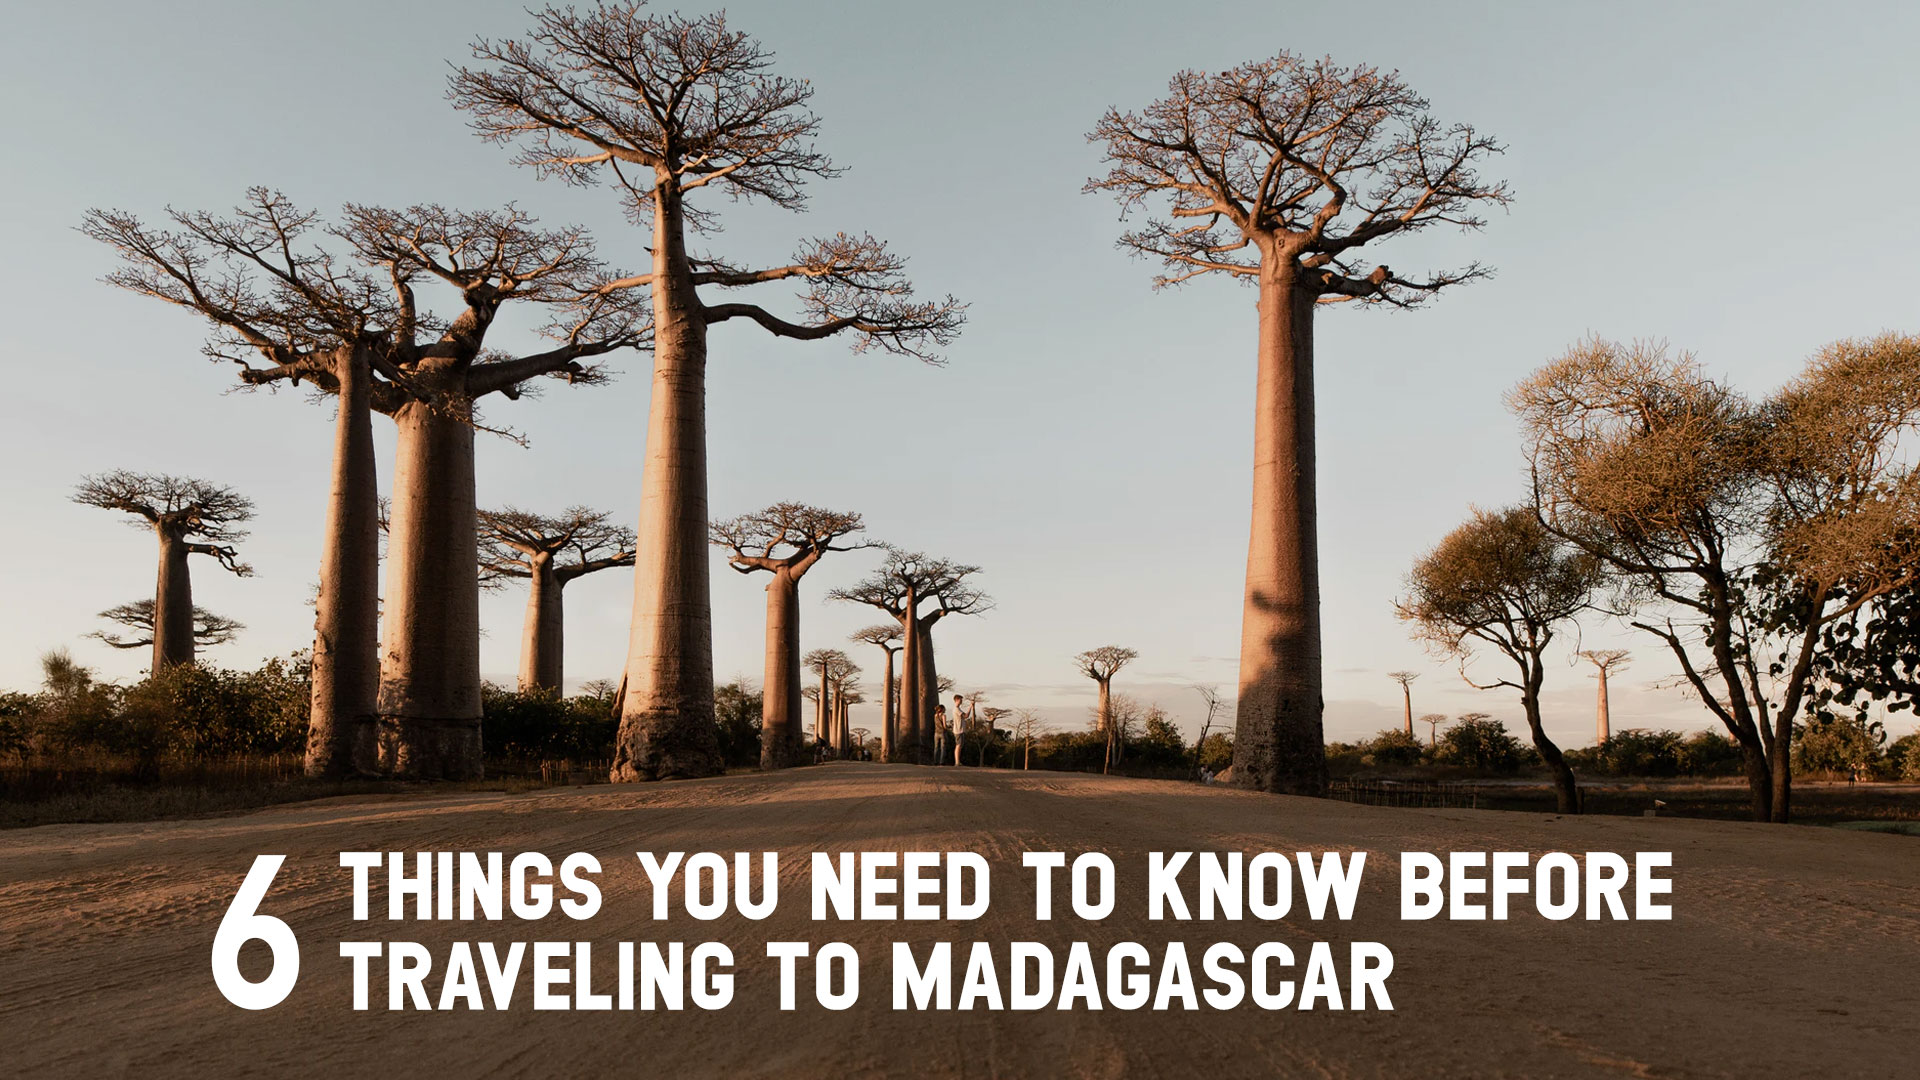 6 Things You Need To Know Before Traveling To Madagascar